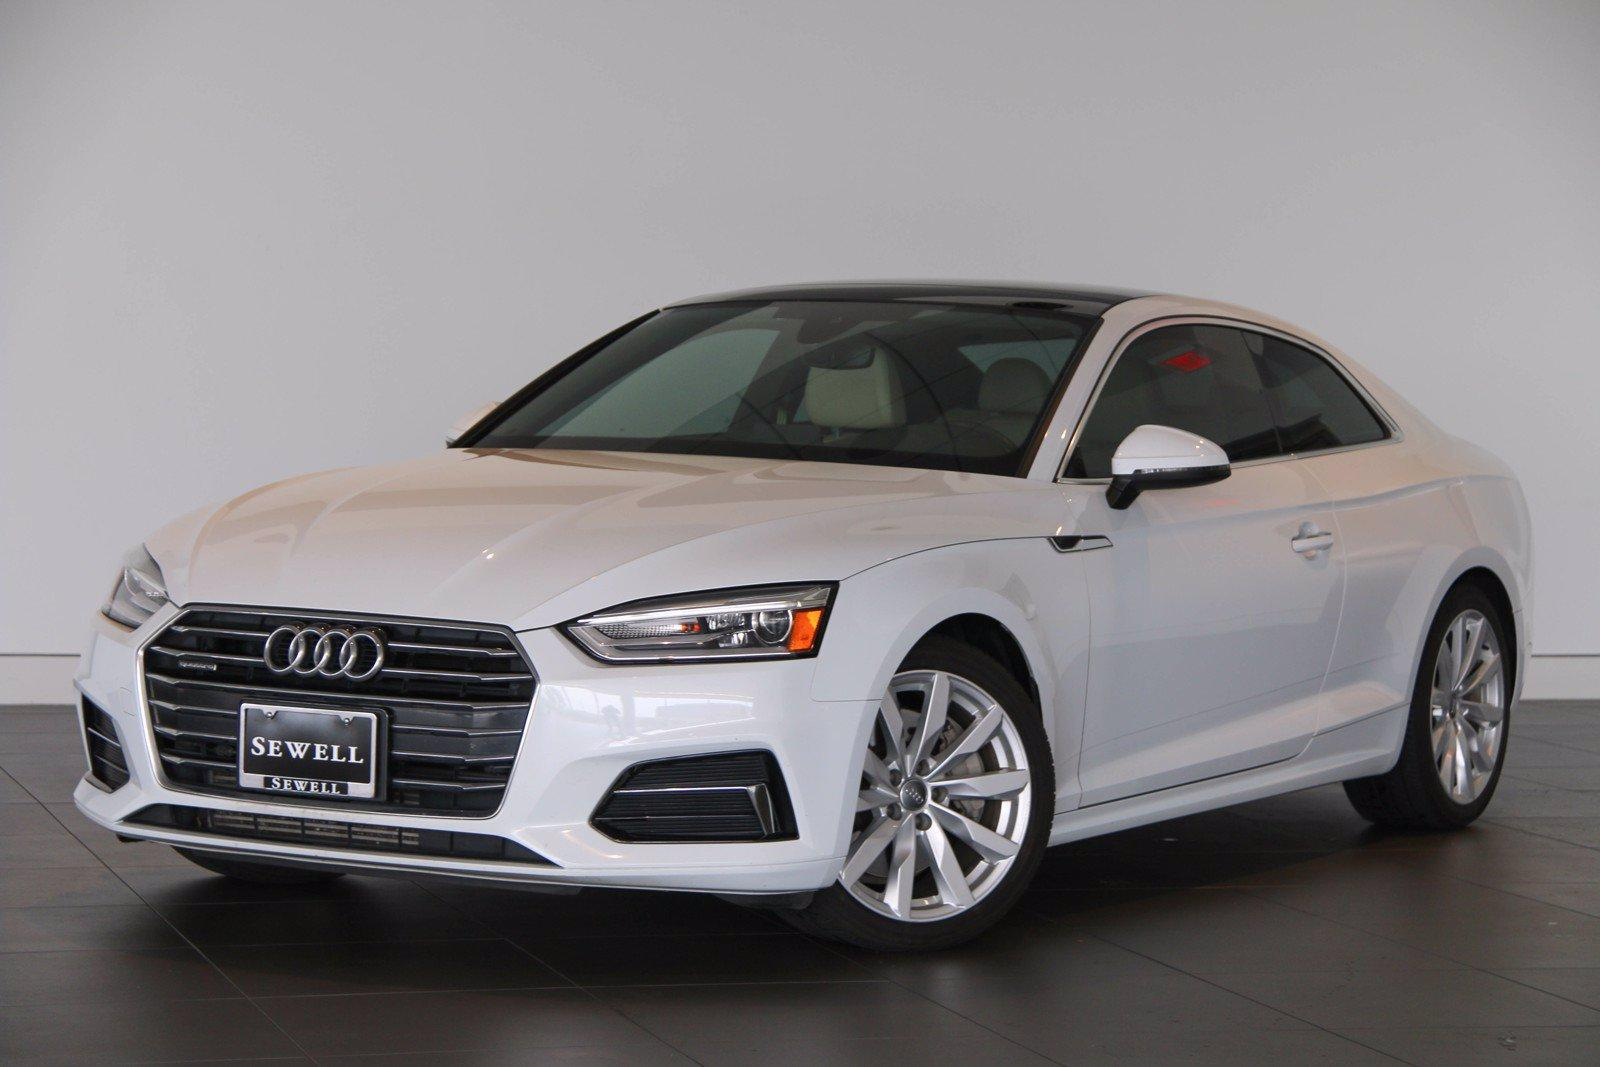 2018 Audi A5 Coupe Vehicle Photo in Sugar Land, TX 77478